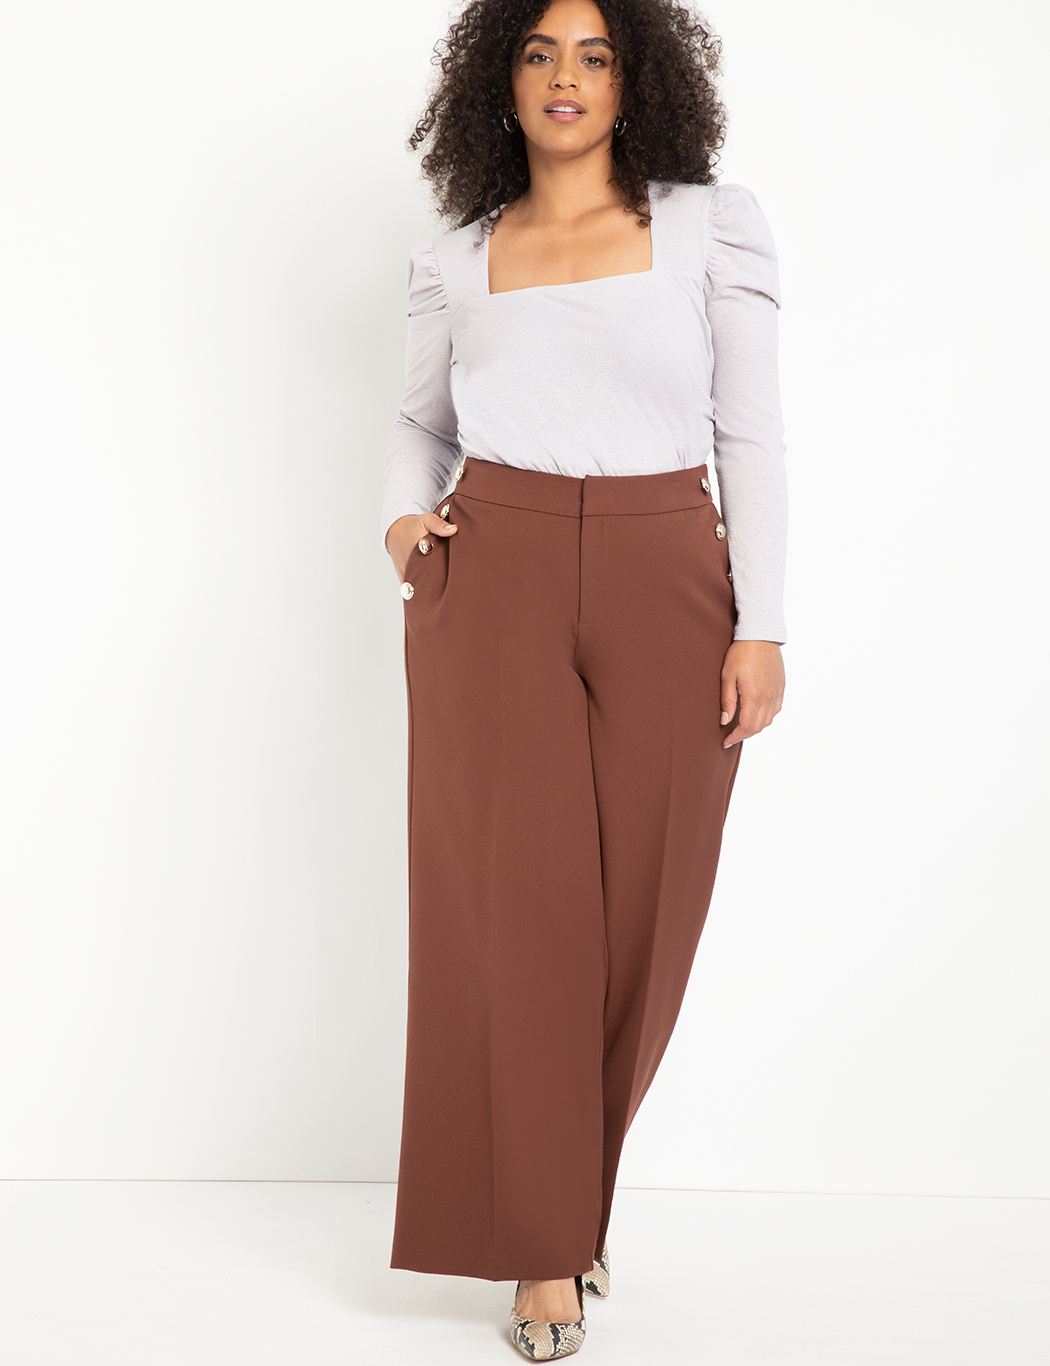 Dramatic Puff Sleeve Top with Square Neck